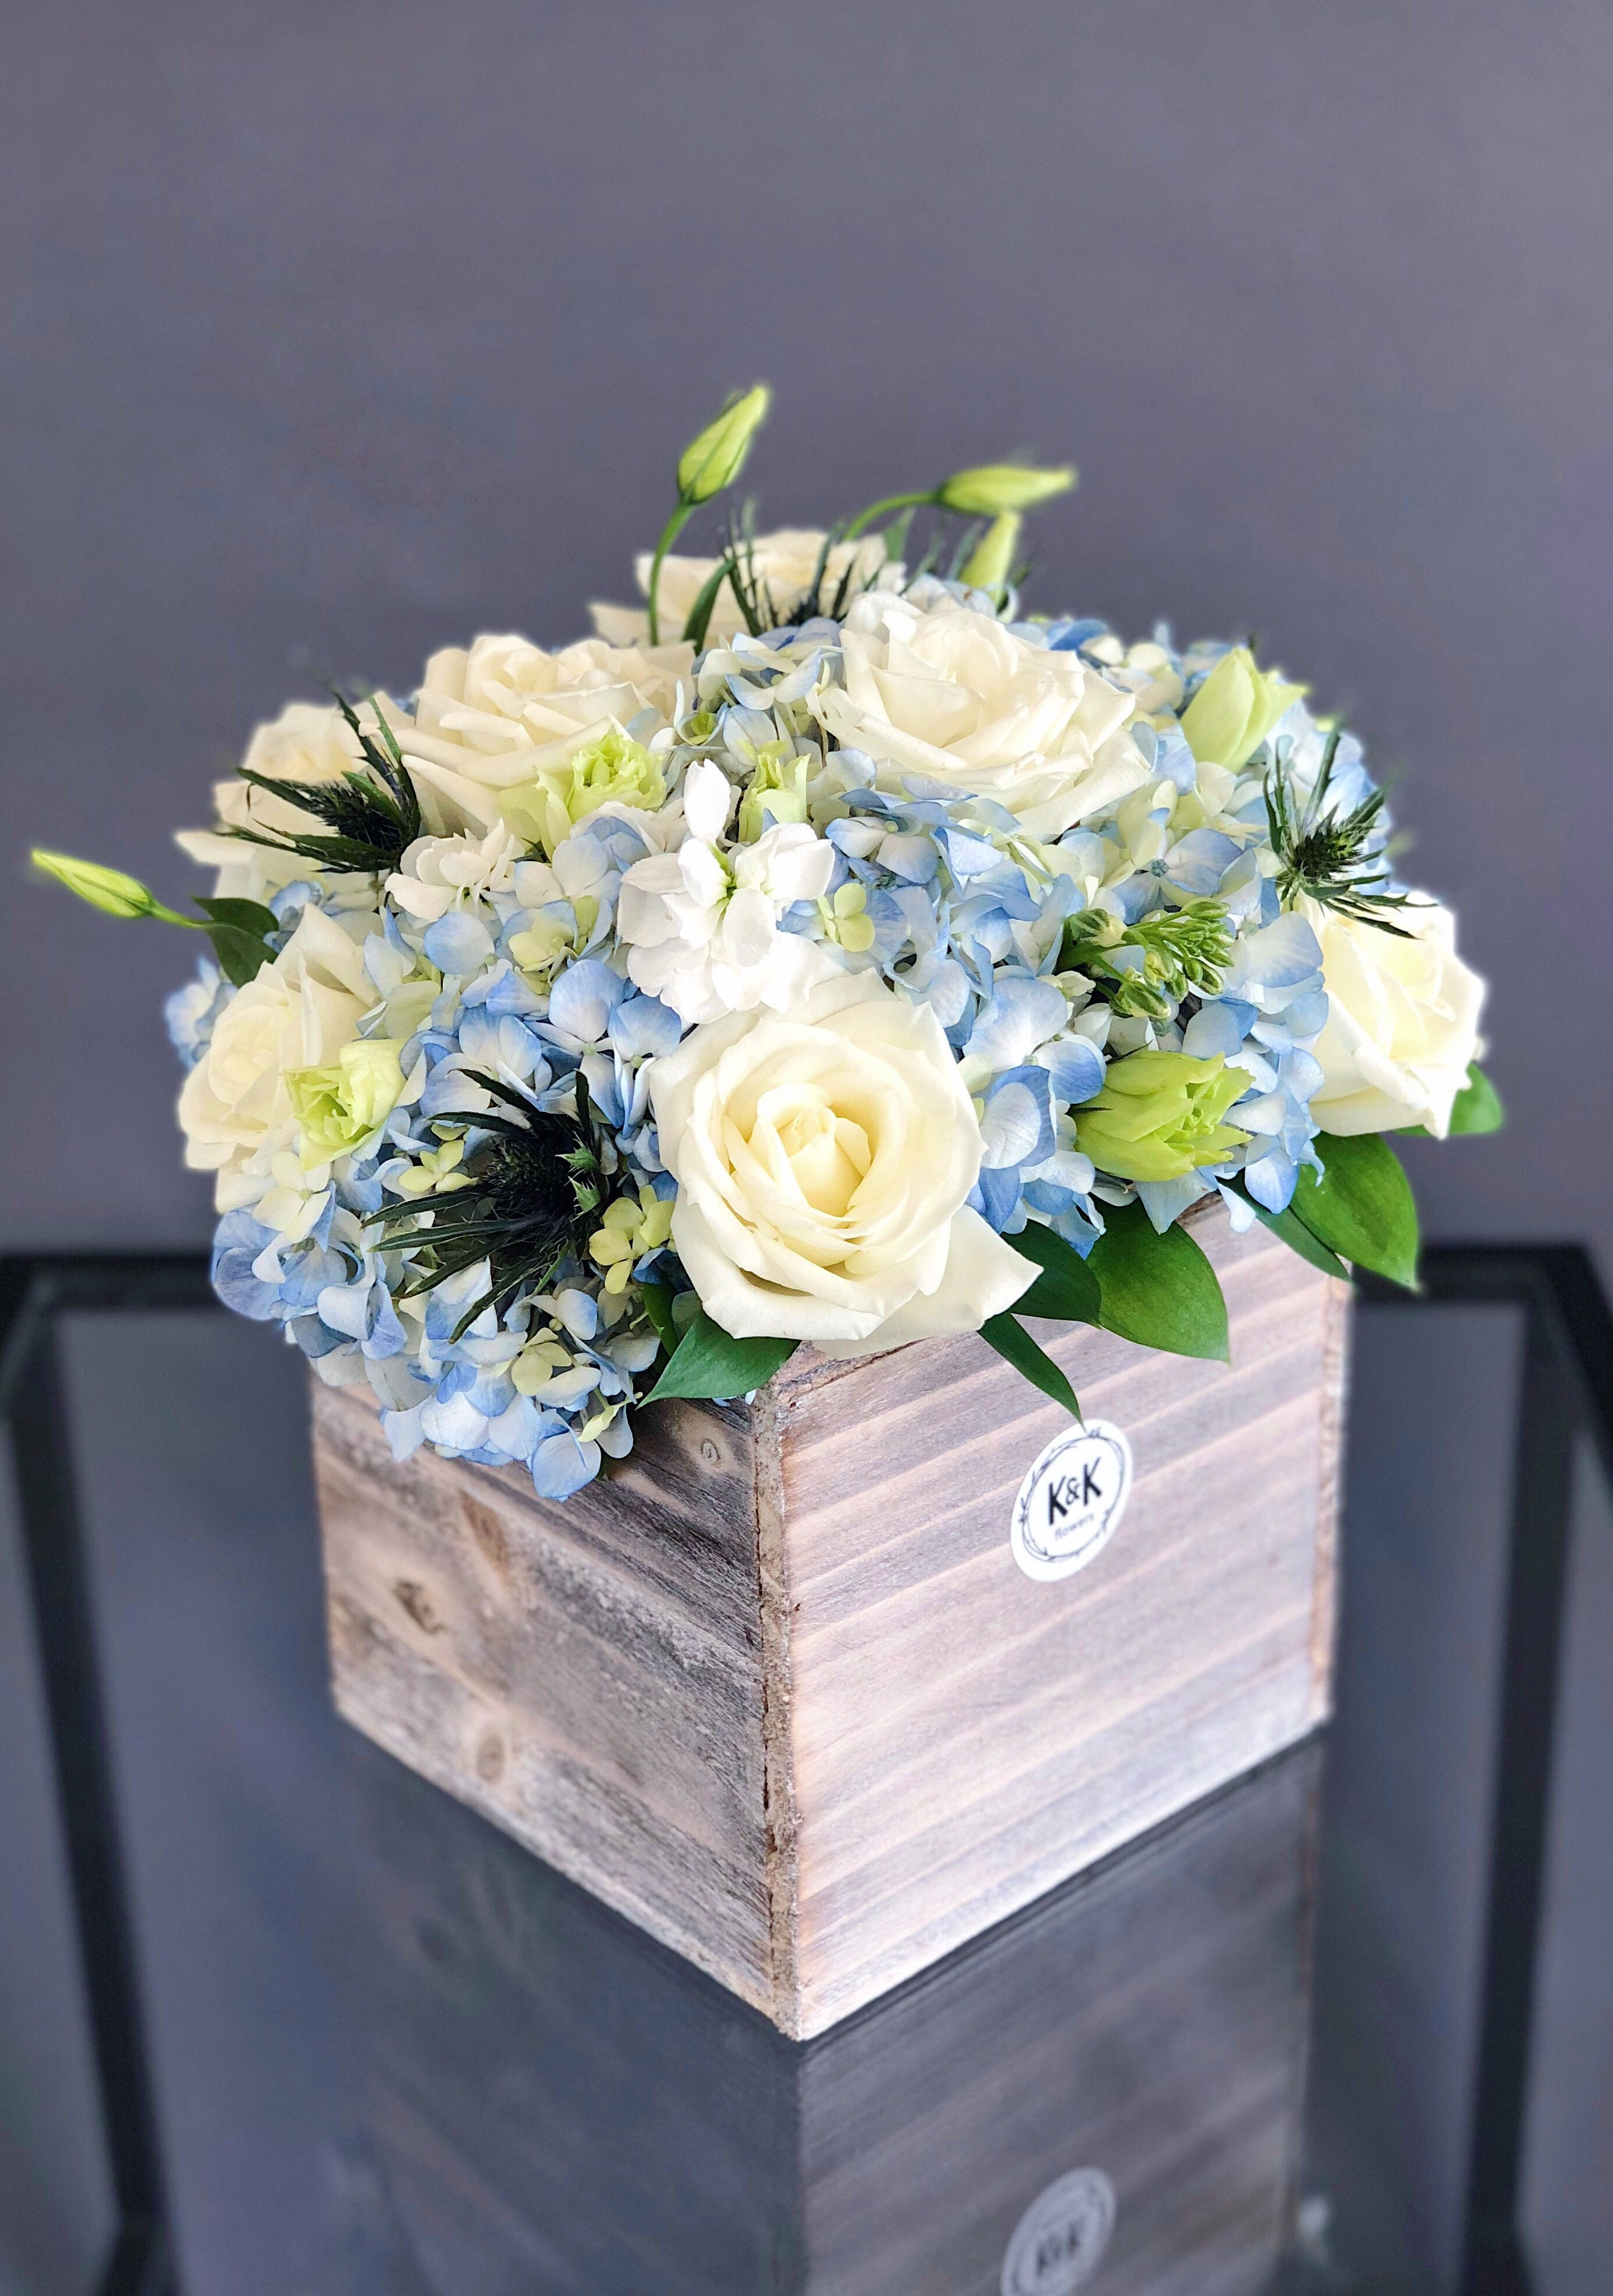 Large wood box arrangement for a table with white roses